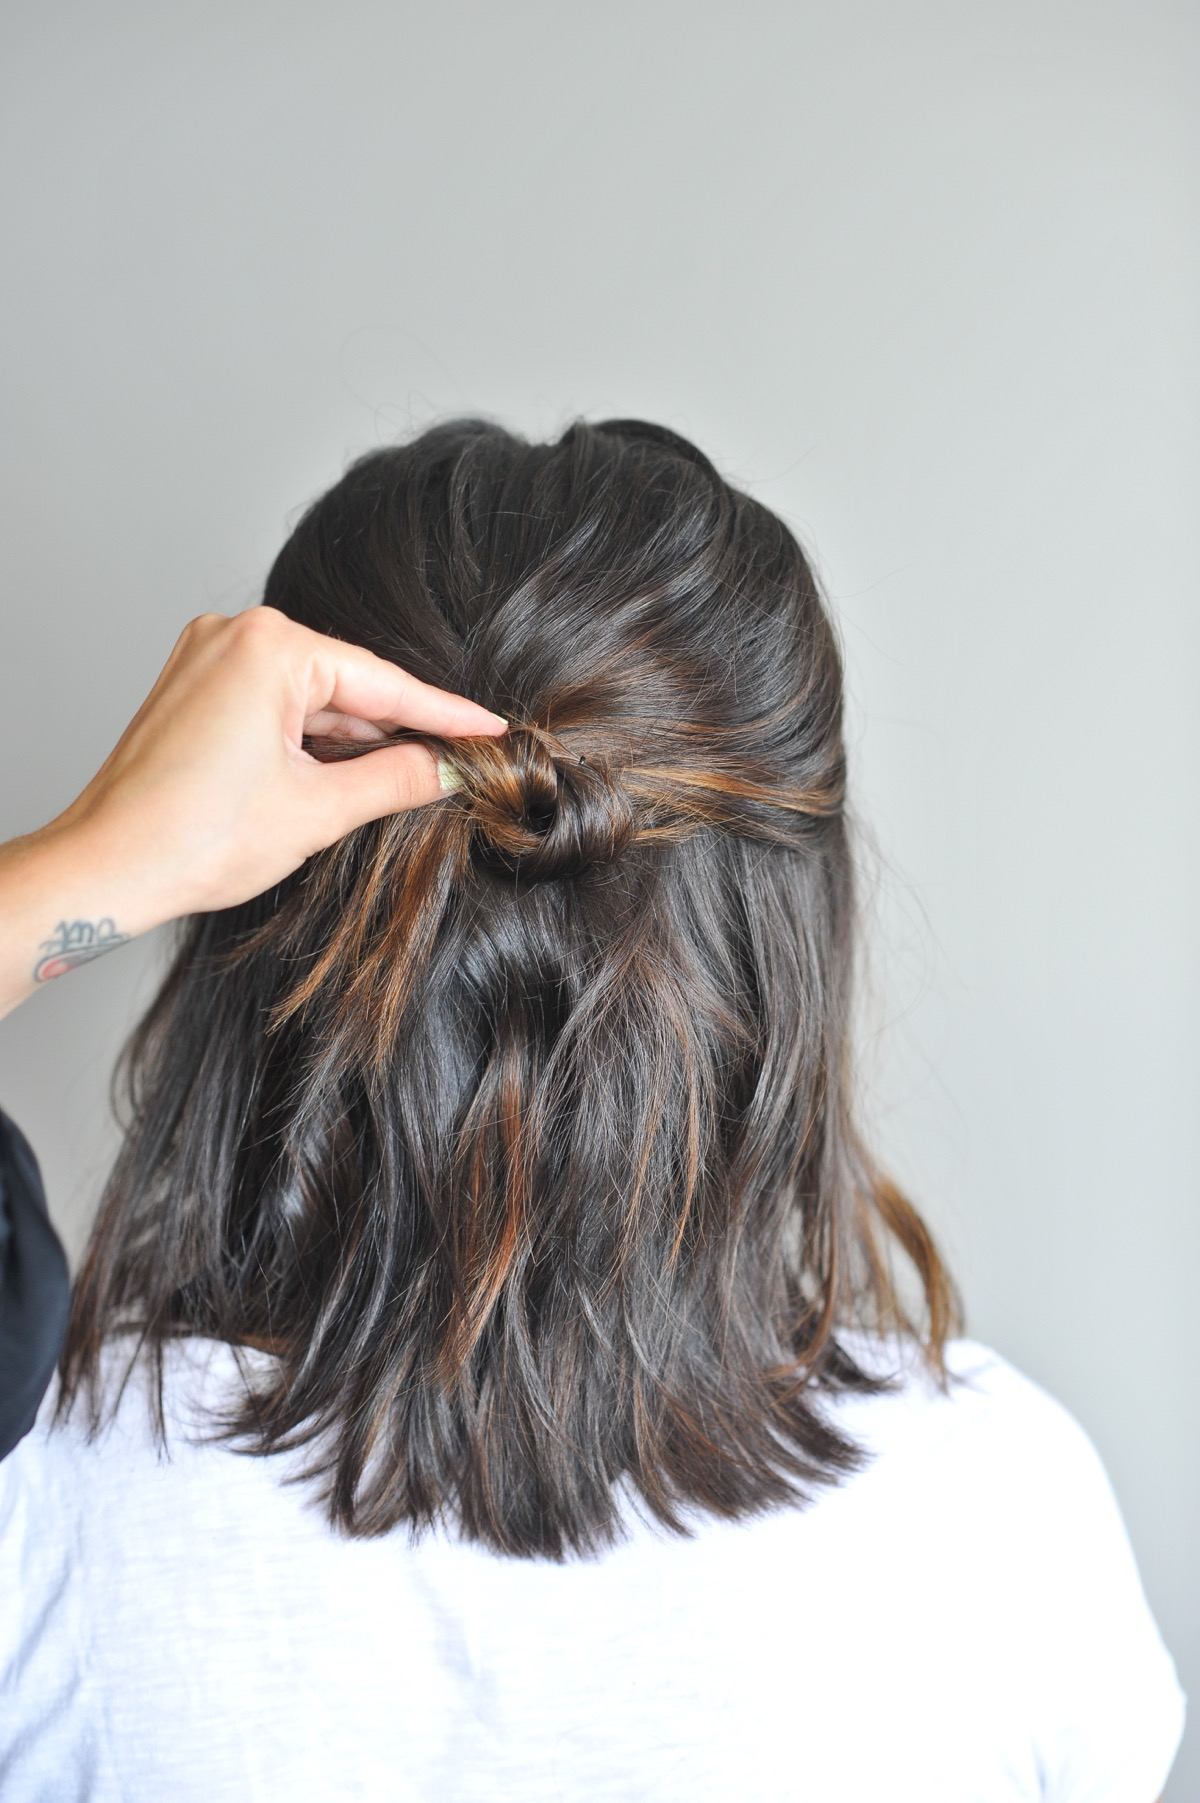 twisted up do hairstyle on short hair - @mystylevita - 2